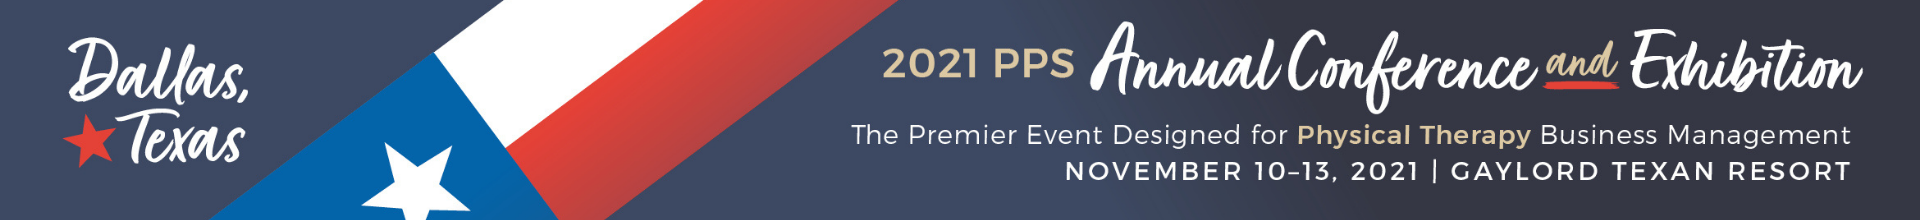 PPS Annual Conference 2021 Event Banner